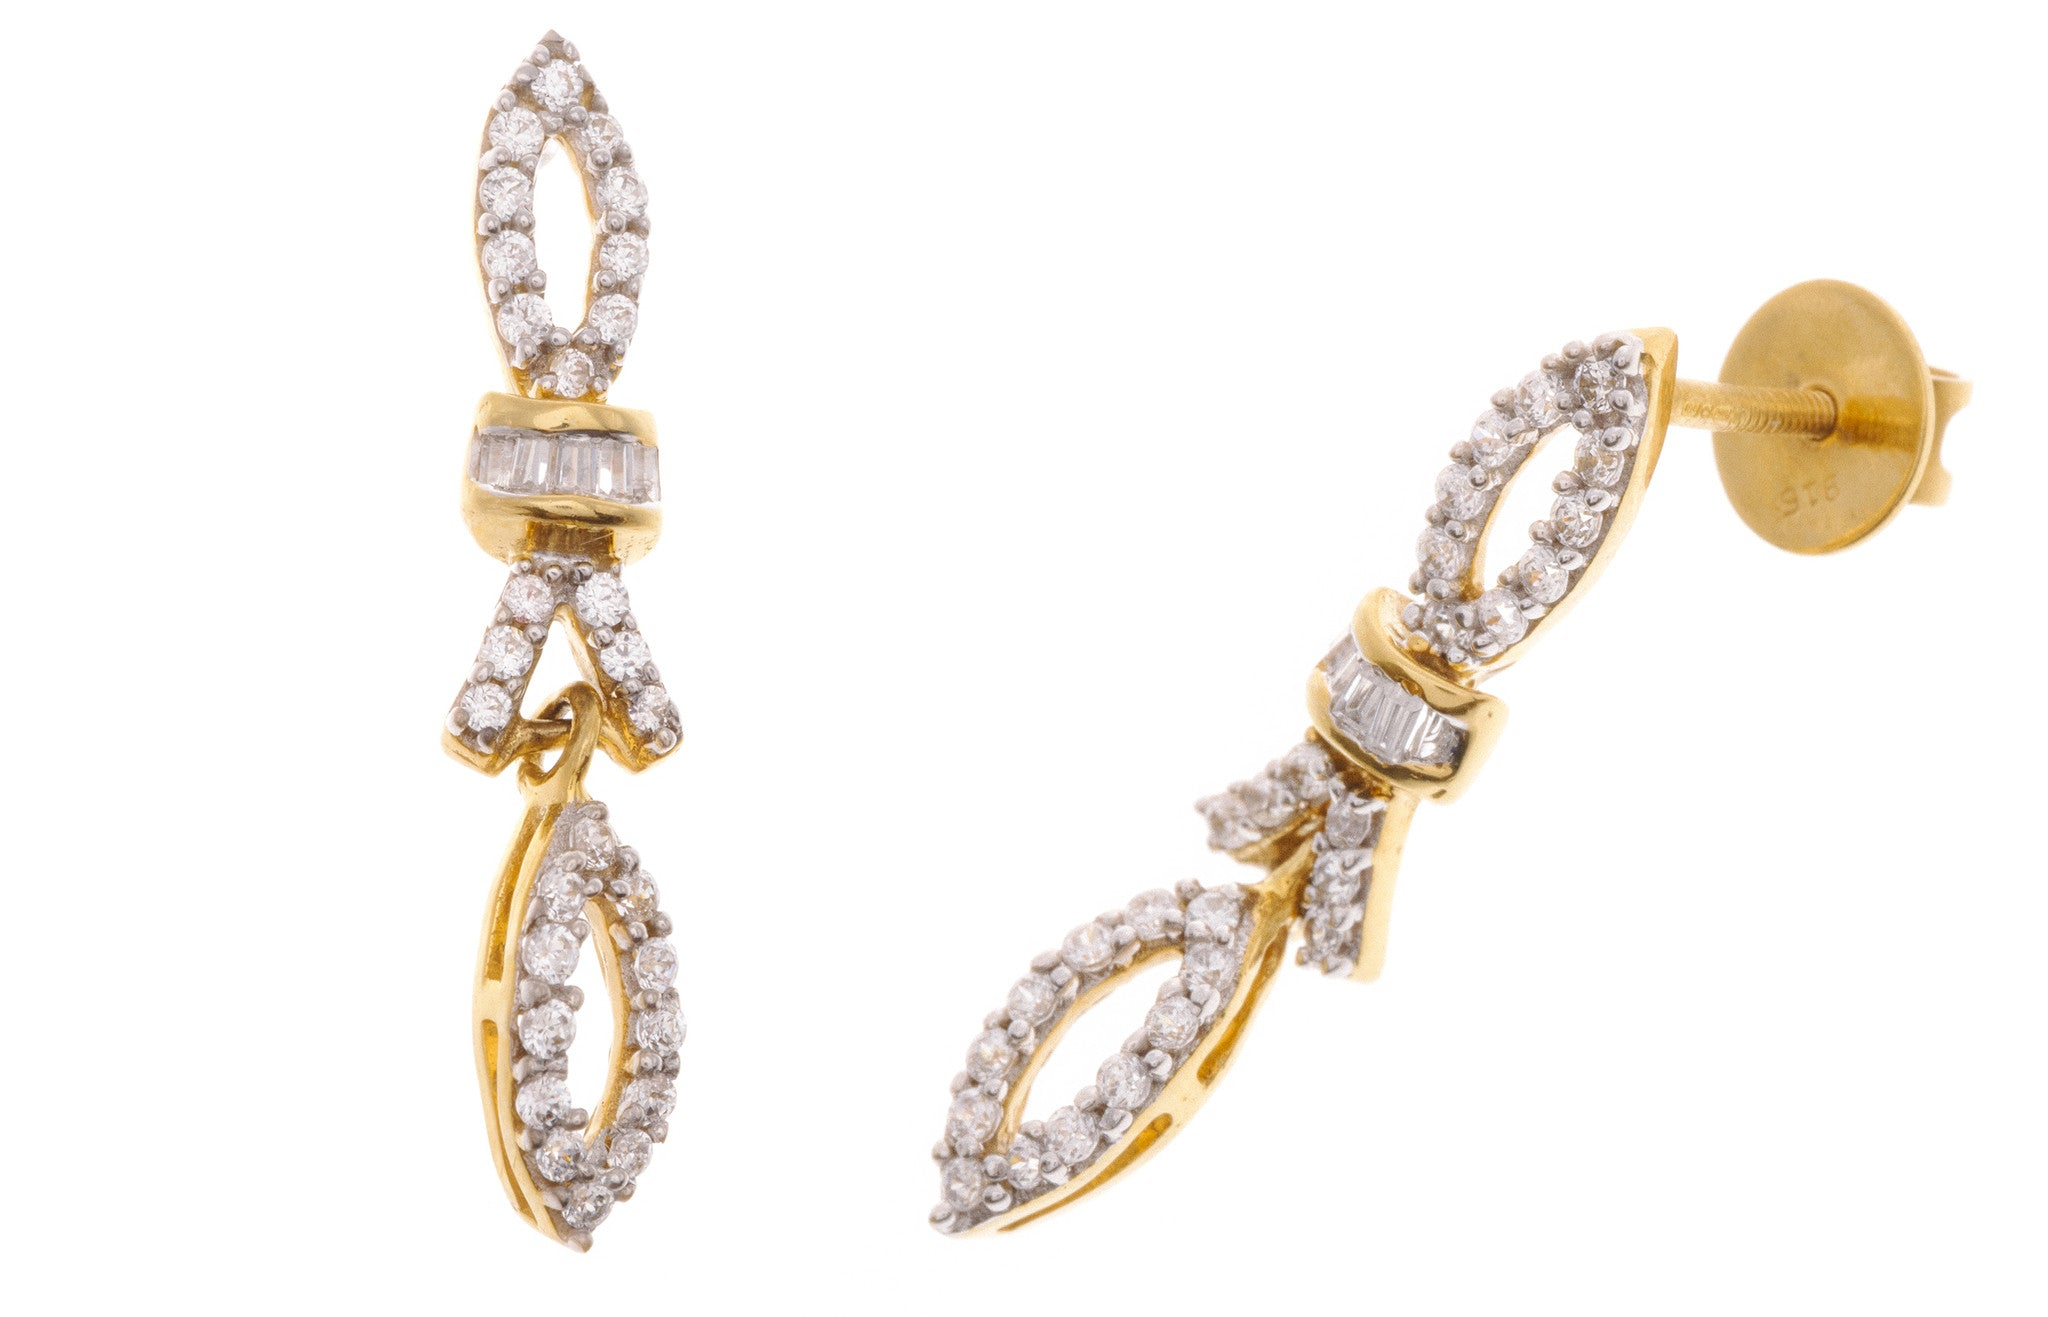 22ct Yellow Gold Cubic Zirconia Mangal Sutra & Earring Set, Minar Jewellers - 9